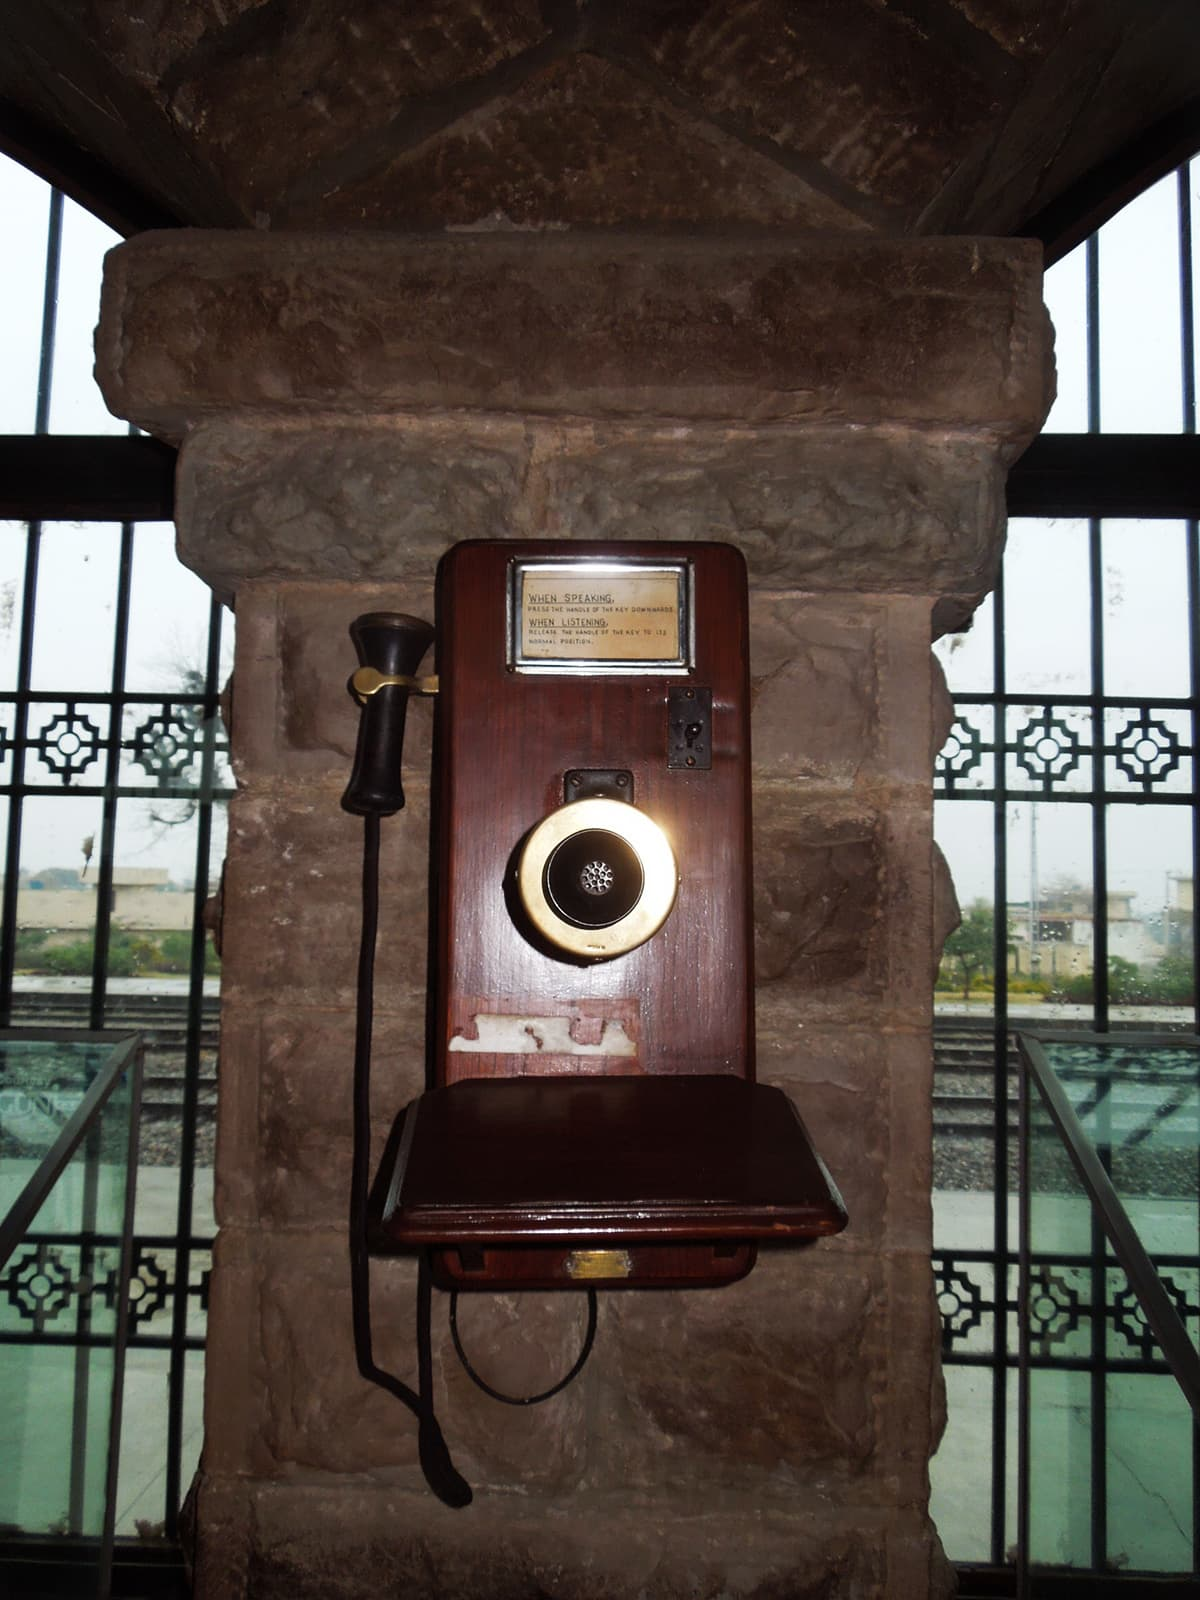 A colonial period telephone which was used in railway stations and trains for communication.